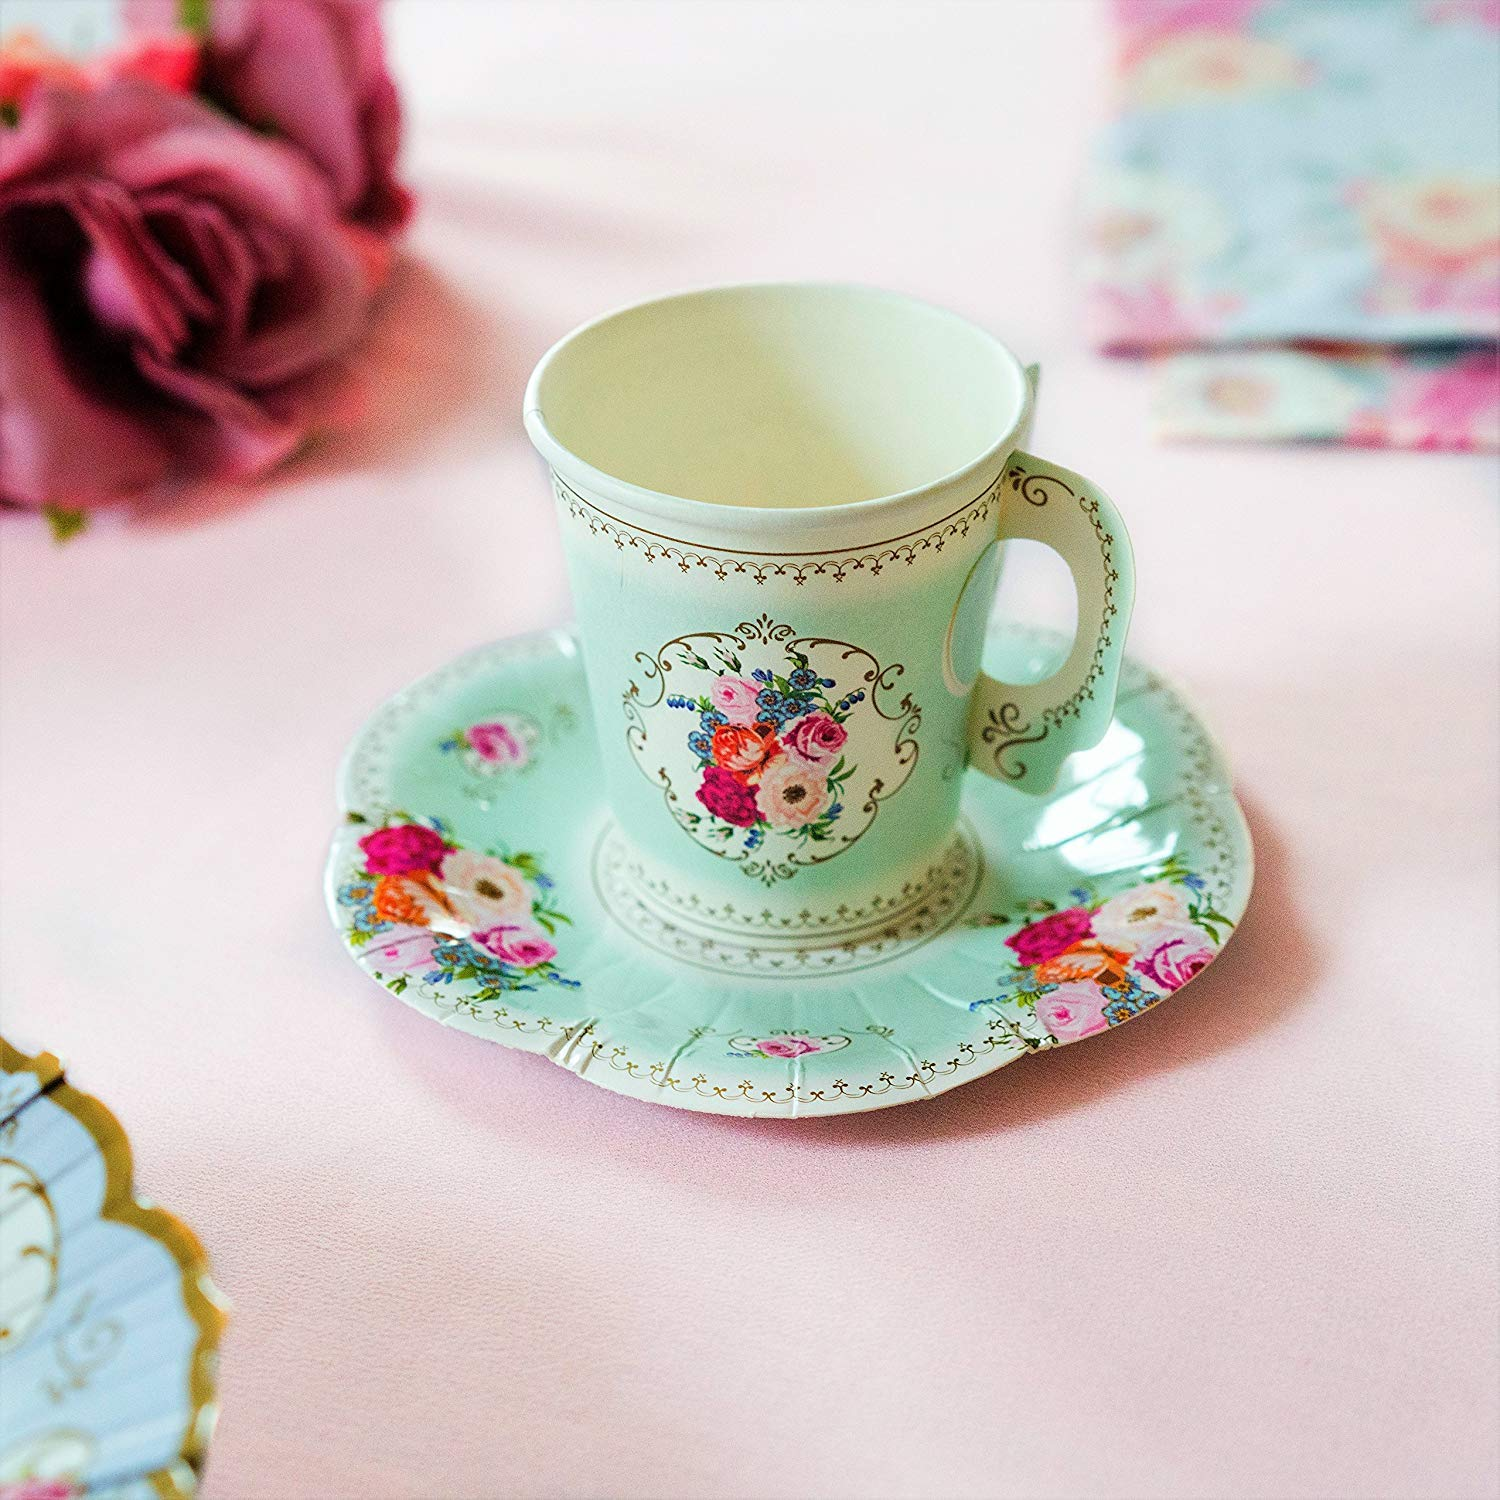 Talking Tables Truly Scrumptious Vintage Floral Paper Tea Cups with Handles and Saucers for a Tea Party or Birthday (24 Pack) ...